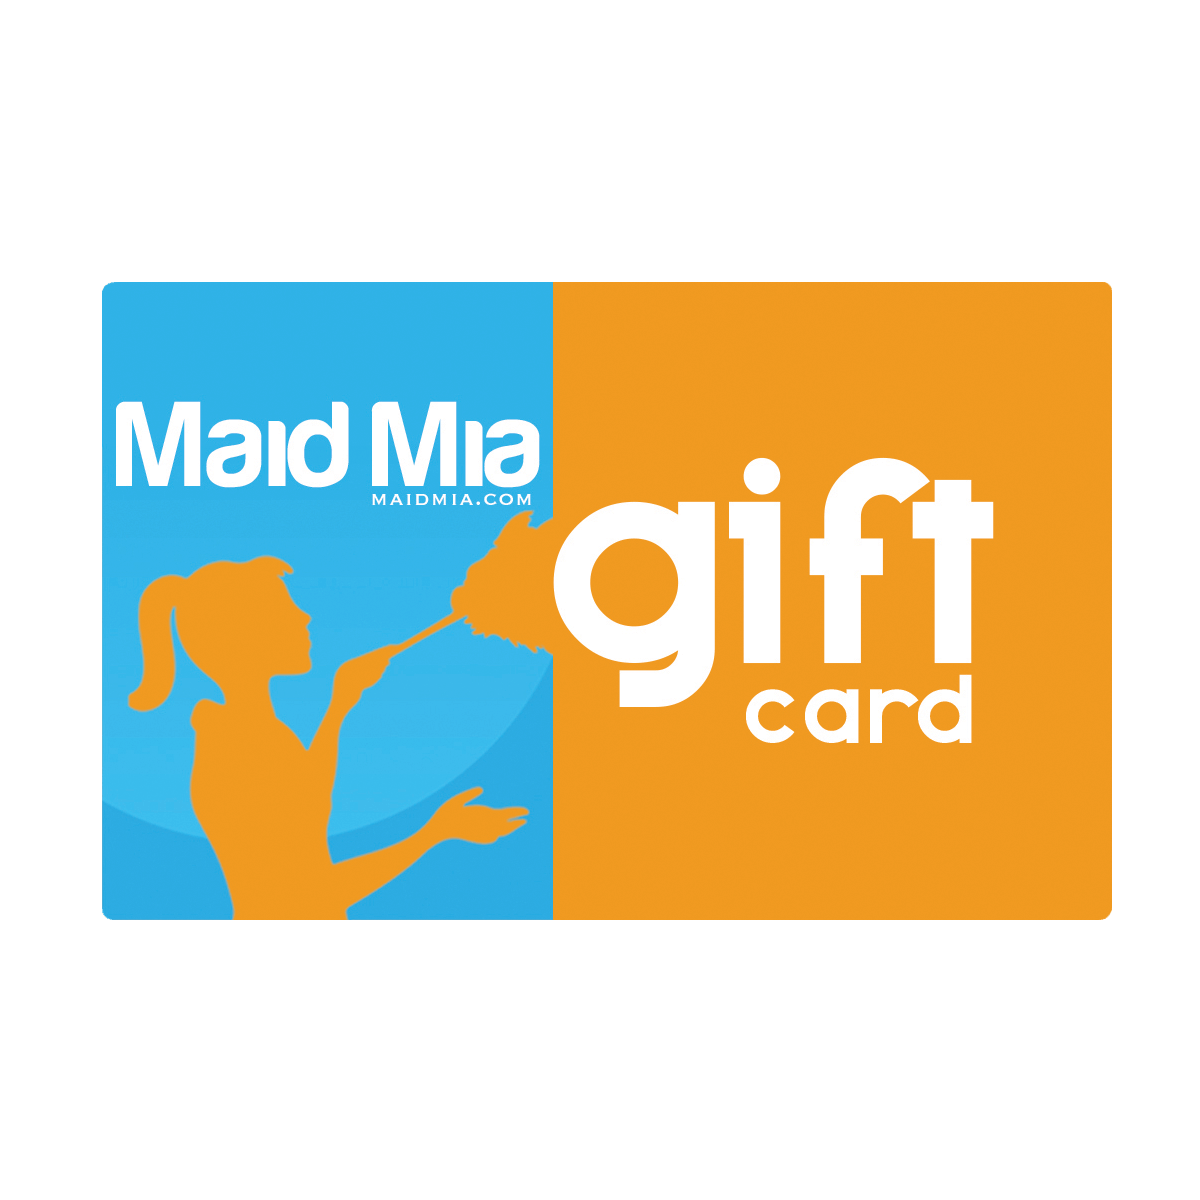 gift certificate Gift Cards gift card maid mia website